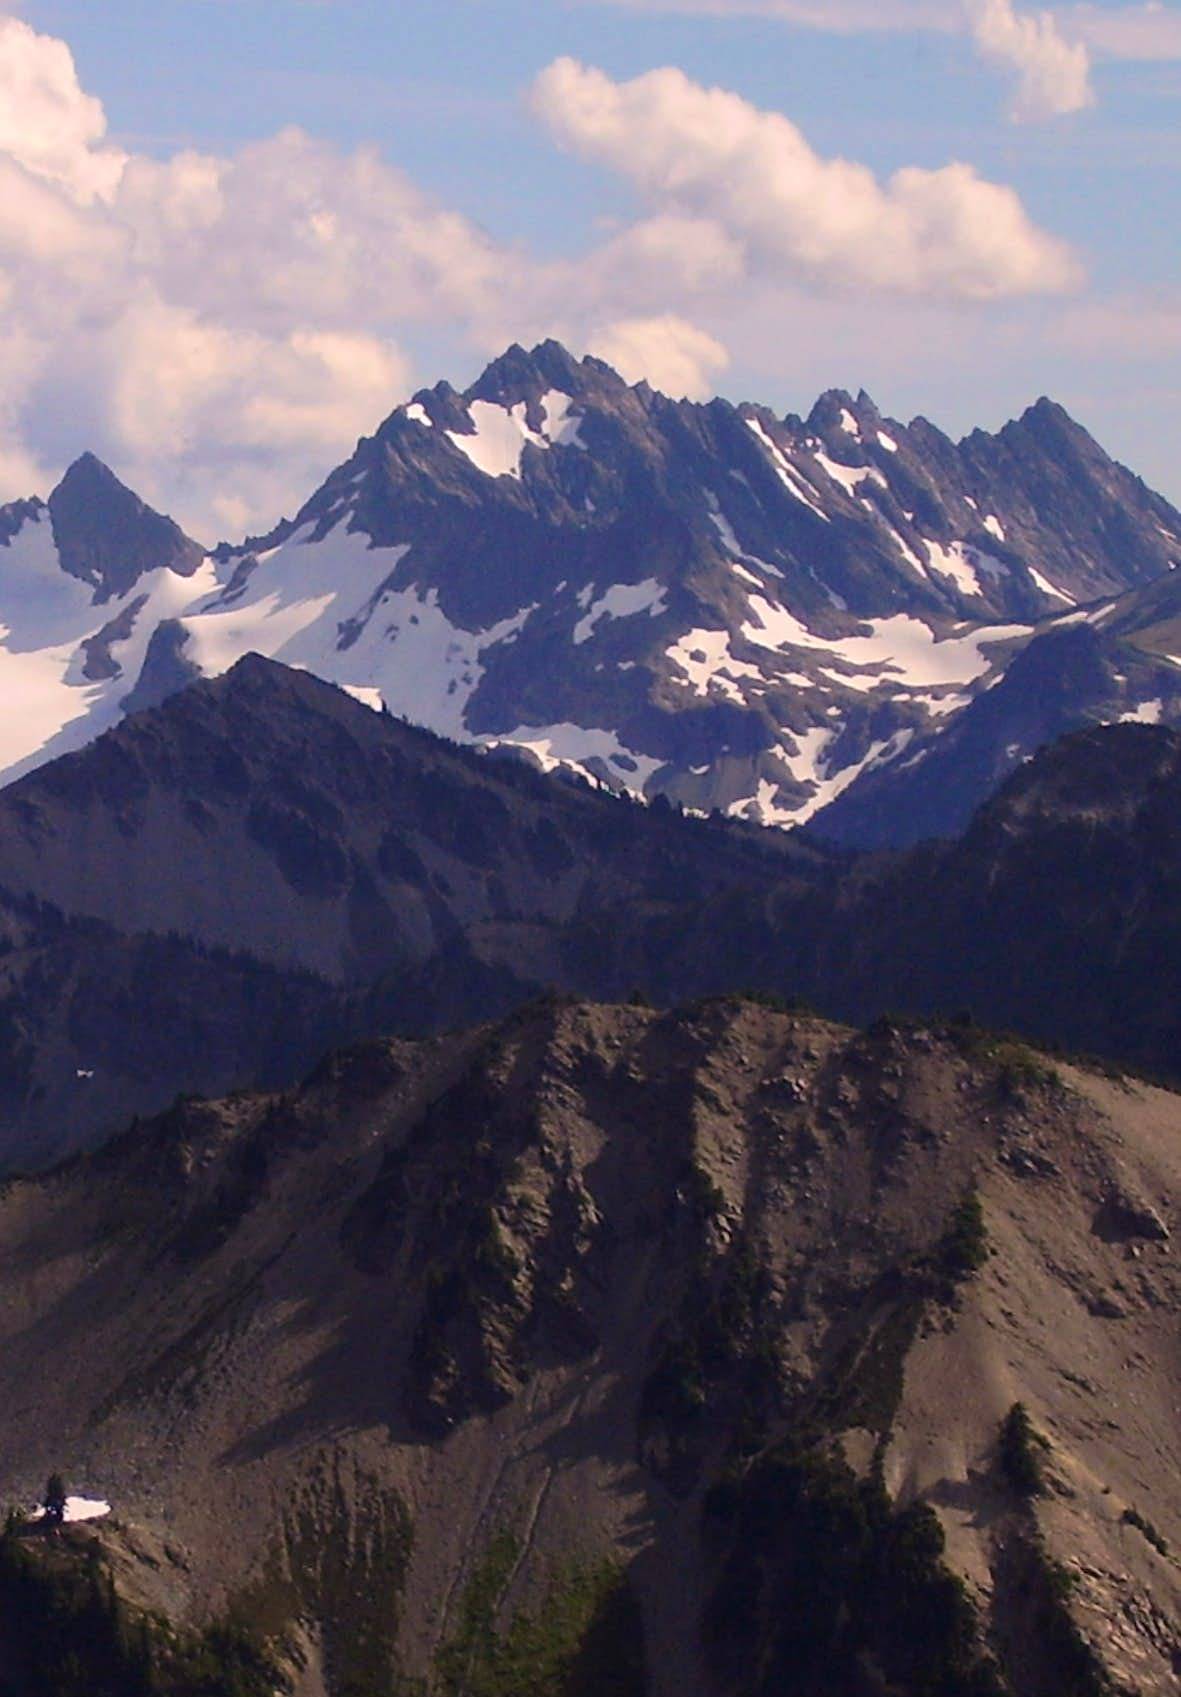 Mount Anderson (West Peak)